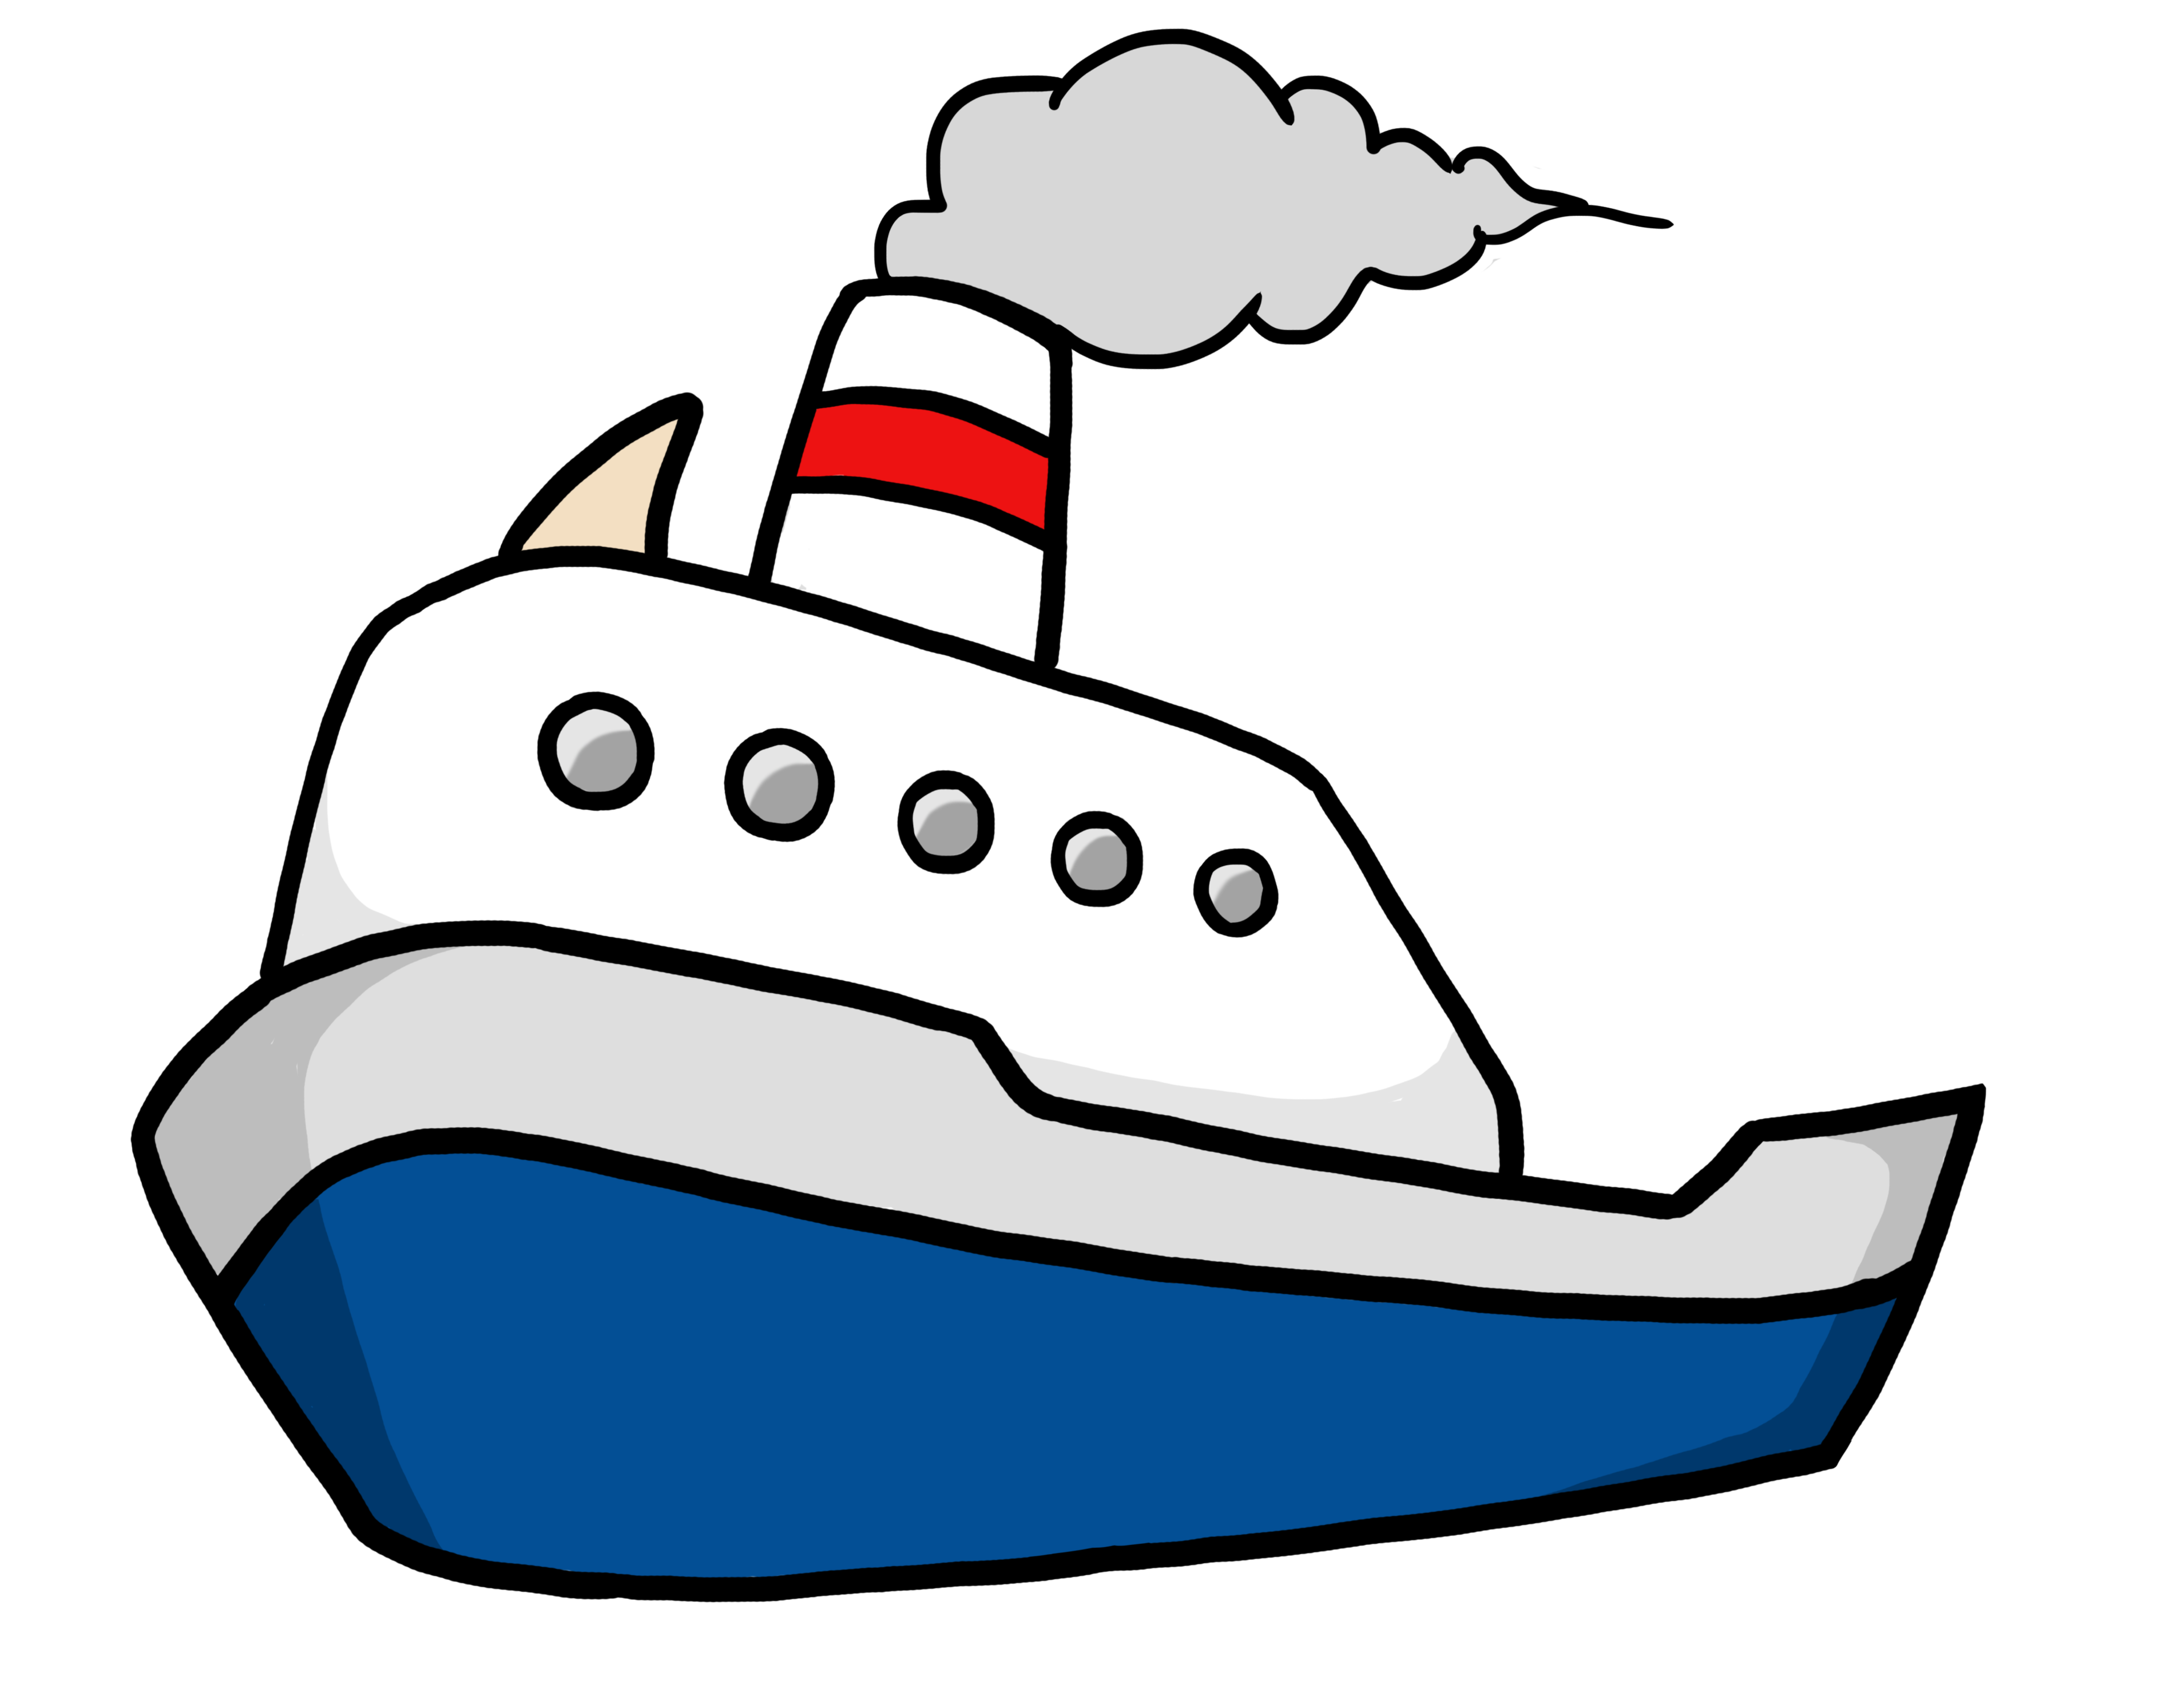 image freeuse stock Clipart boat free on. Ship transparent clear background